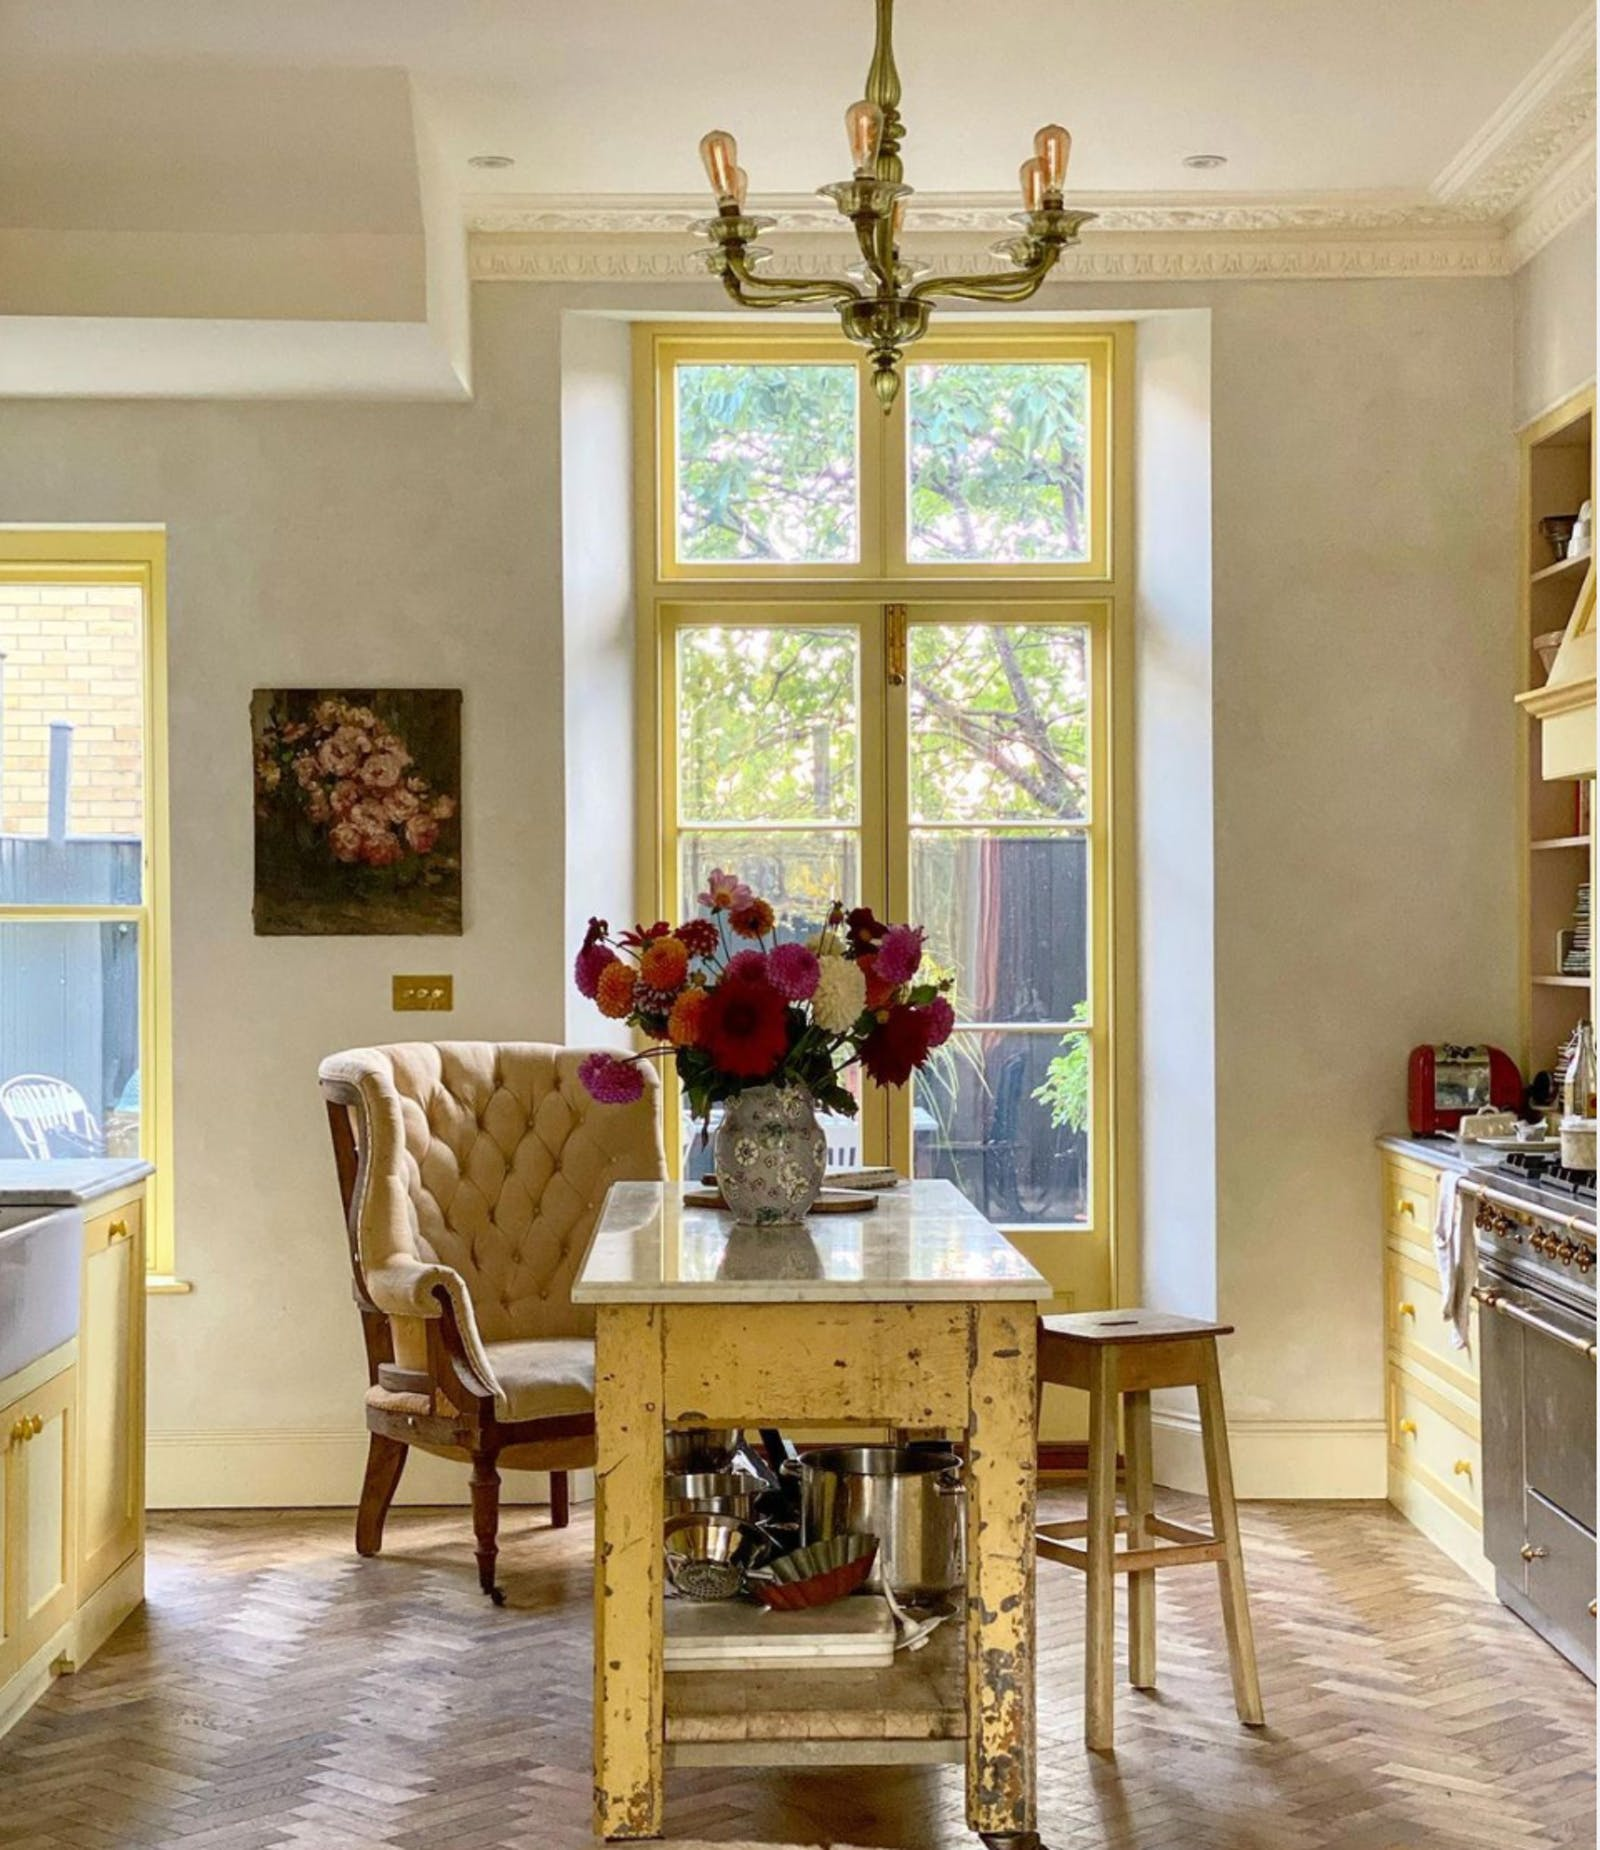 Kitchen with yellow furniture and windows